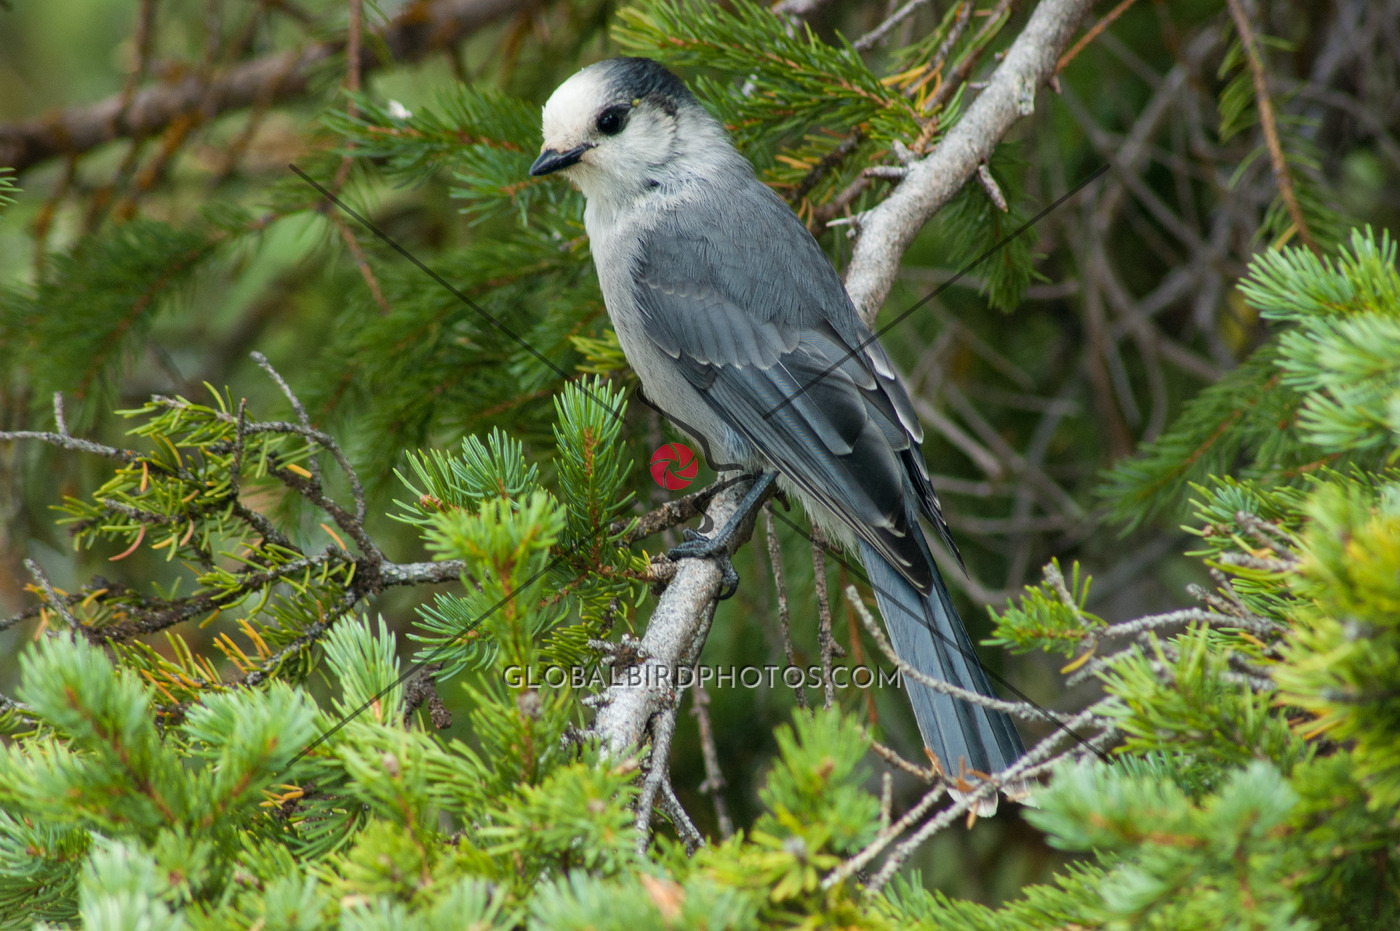 185-003-gray-jay-2006-08-29-damon-s-calderwood-lake-louise-alberta-canada-0286 - Global Bird Photos